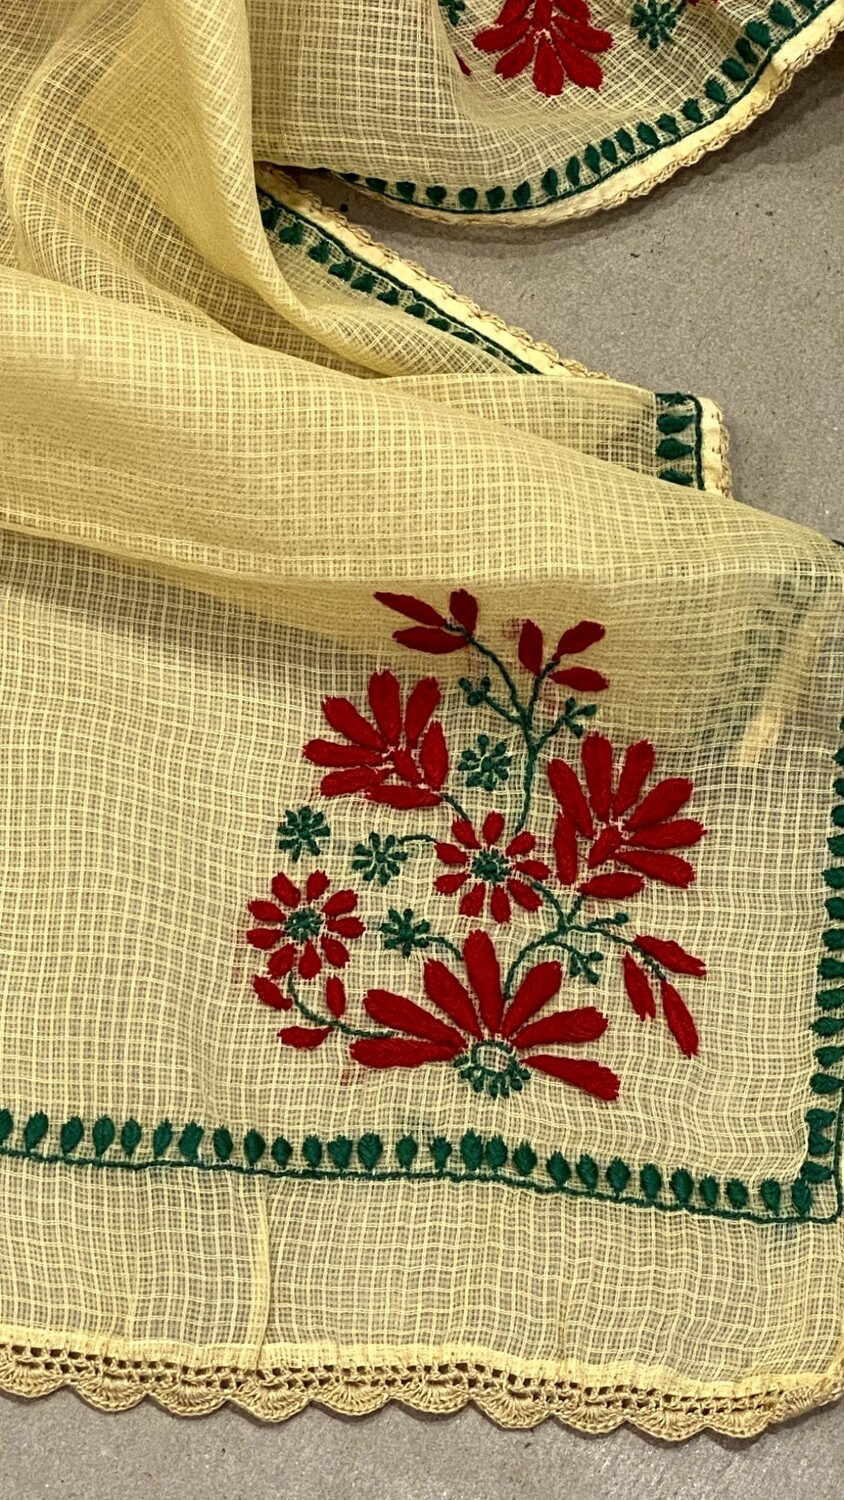 Red and green flower design on beige kota stole